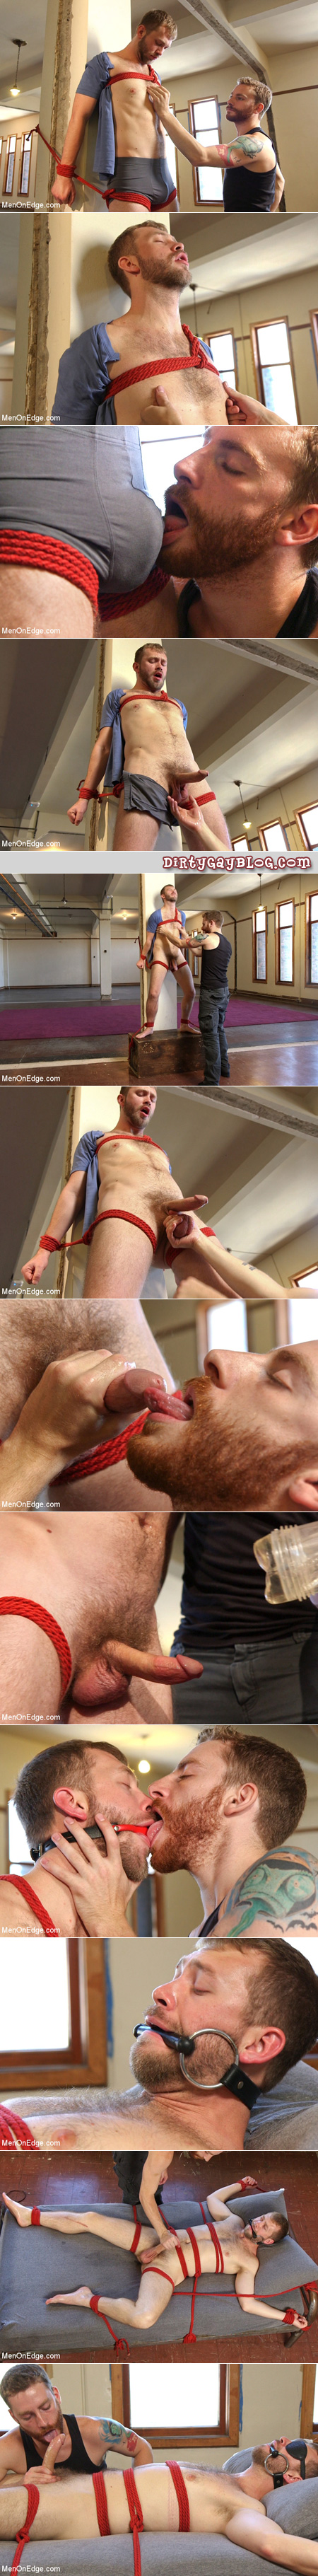 Gay bondage and edging with two hairy, bearded young men.